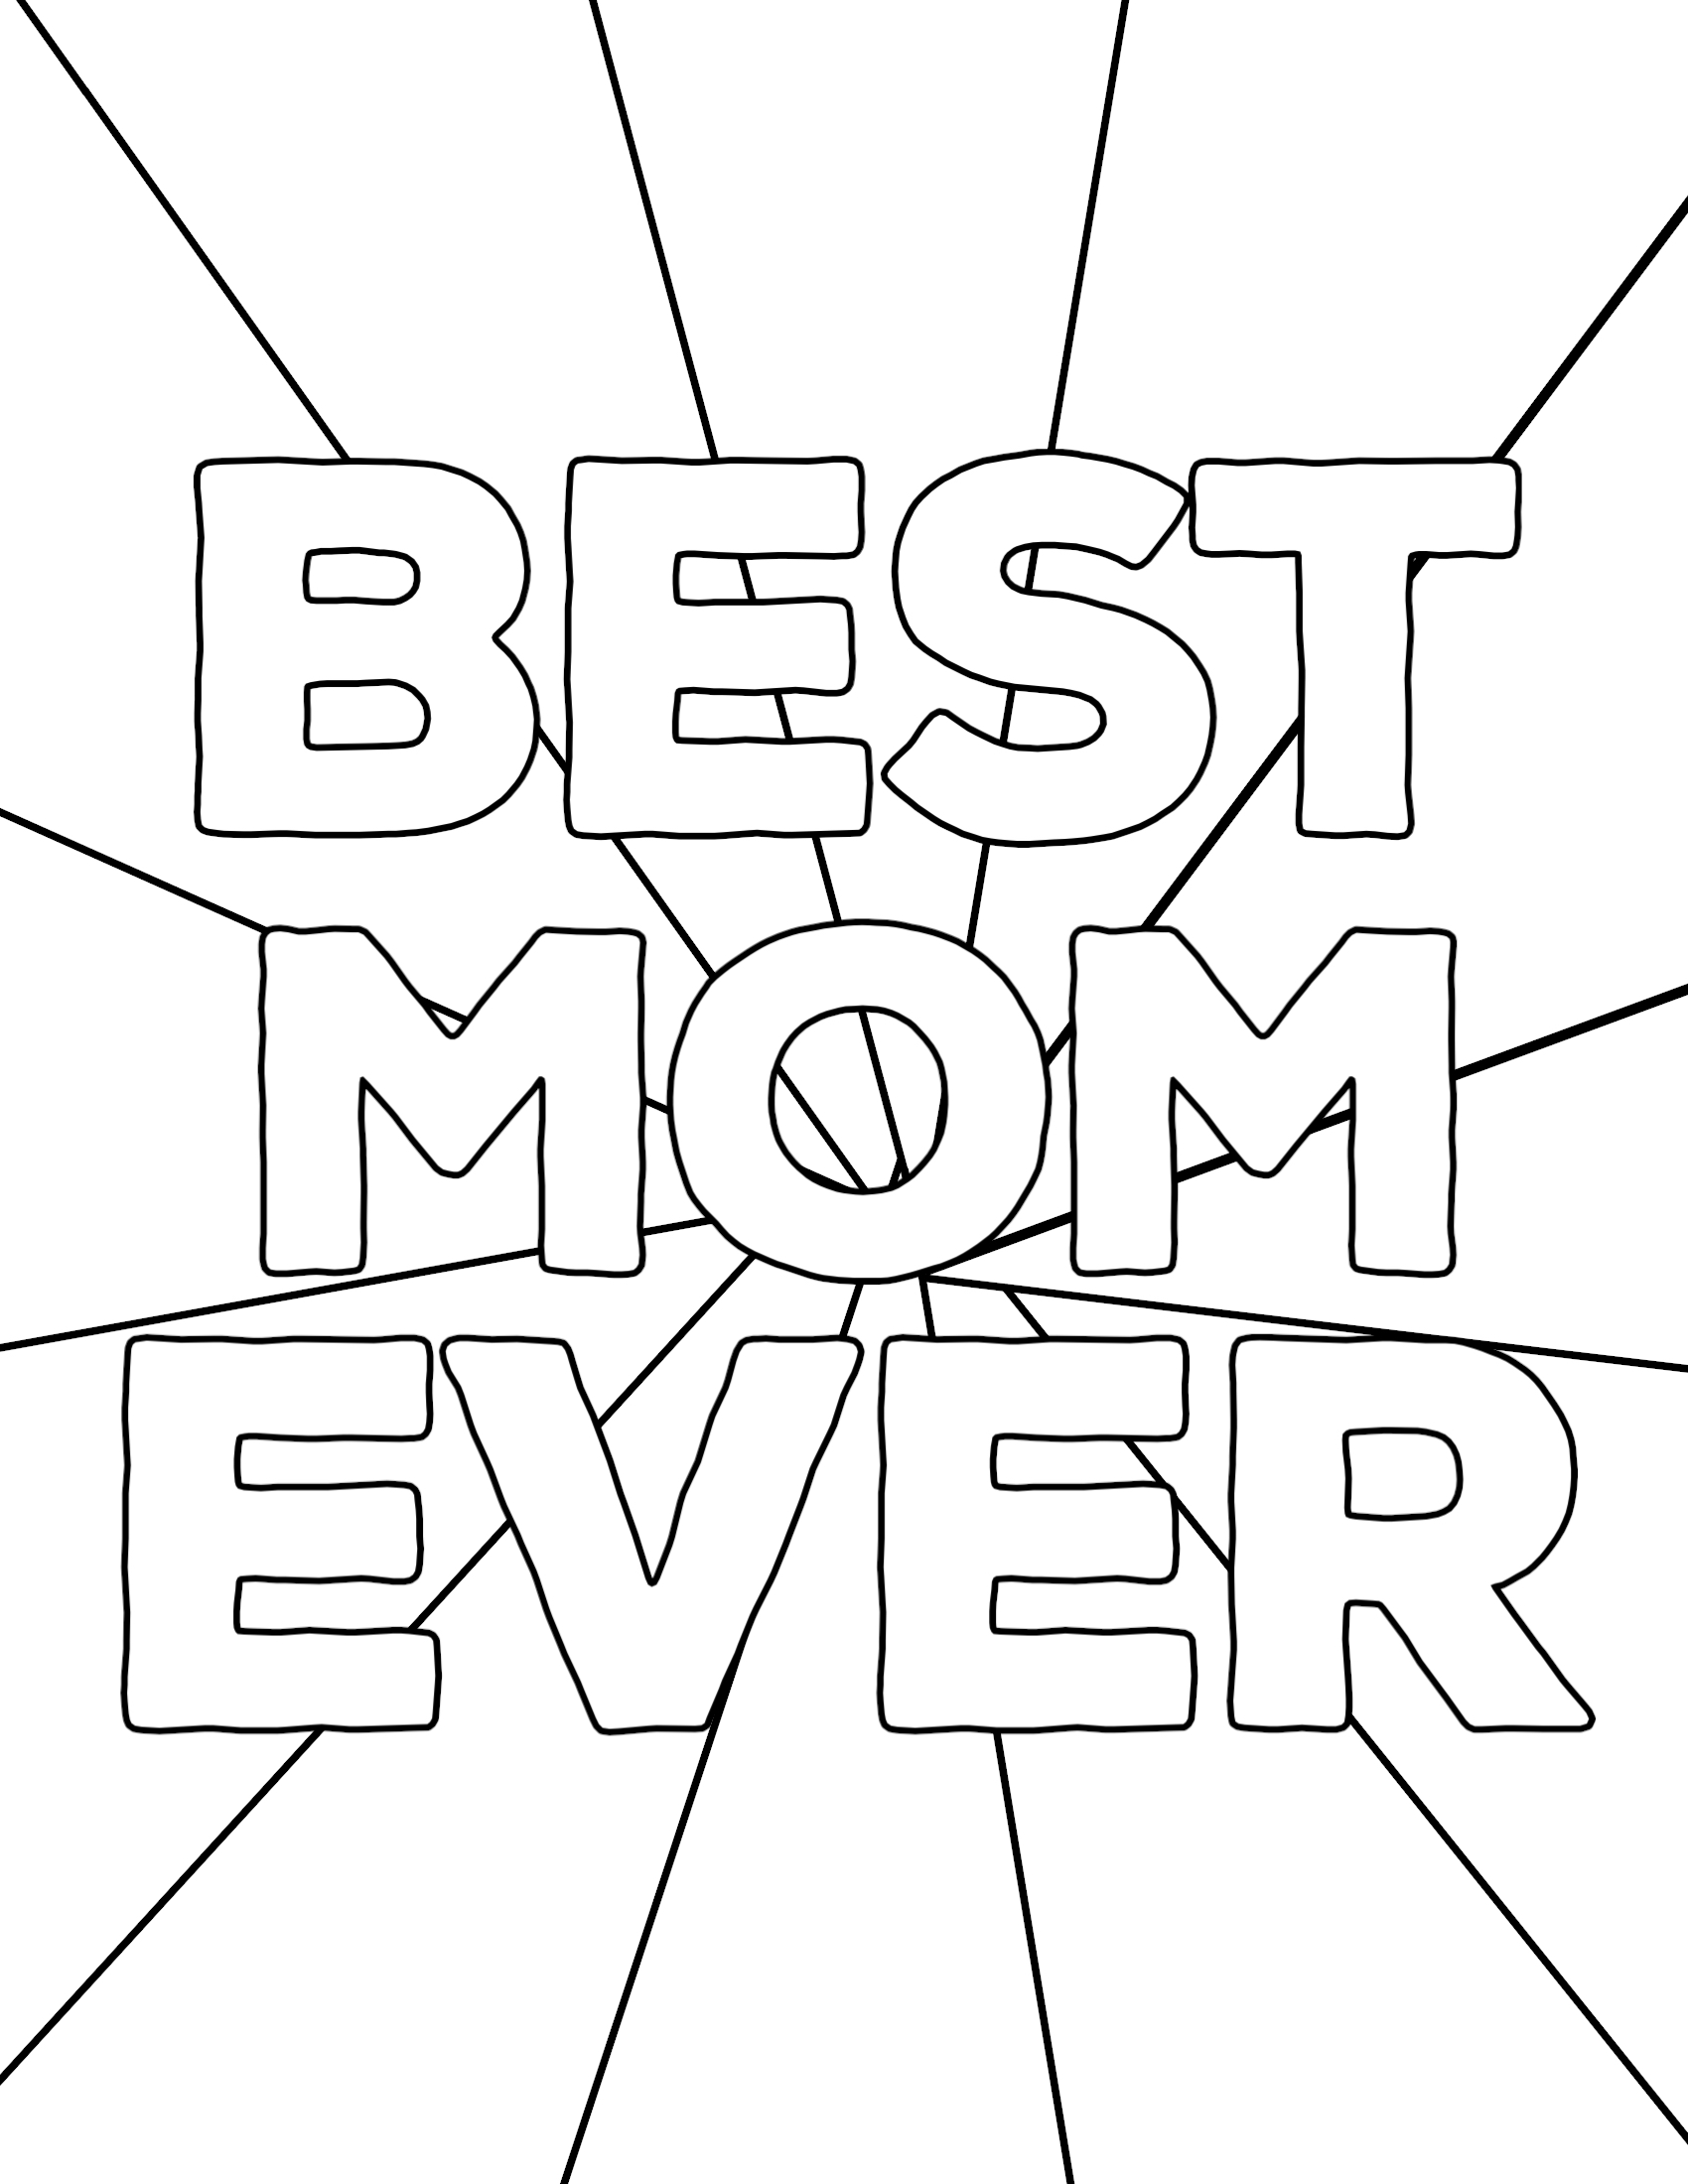 Best mom coloring pages ~ Free Printable Mother's Day Coloring Pages - Paper Trail ...